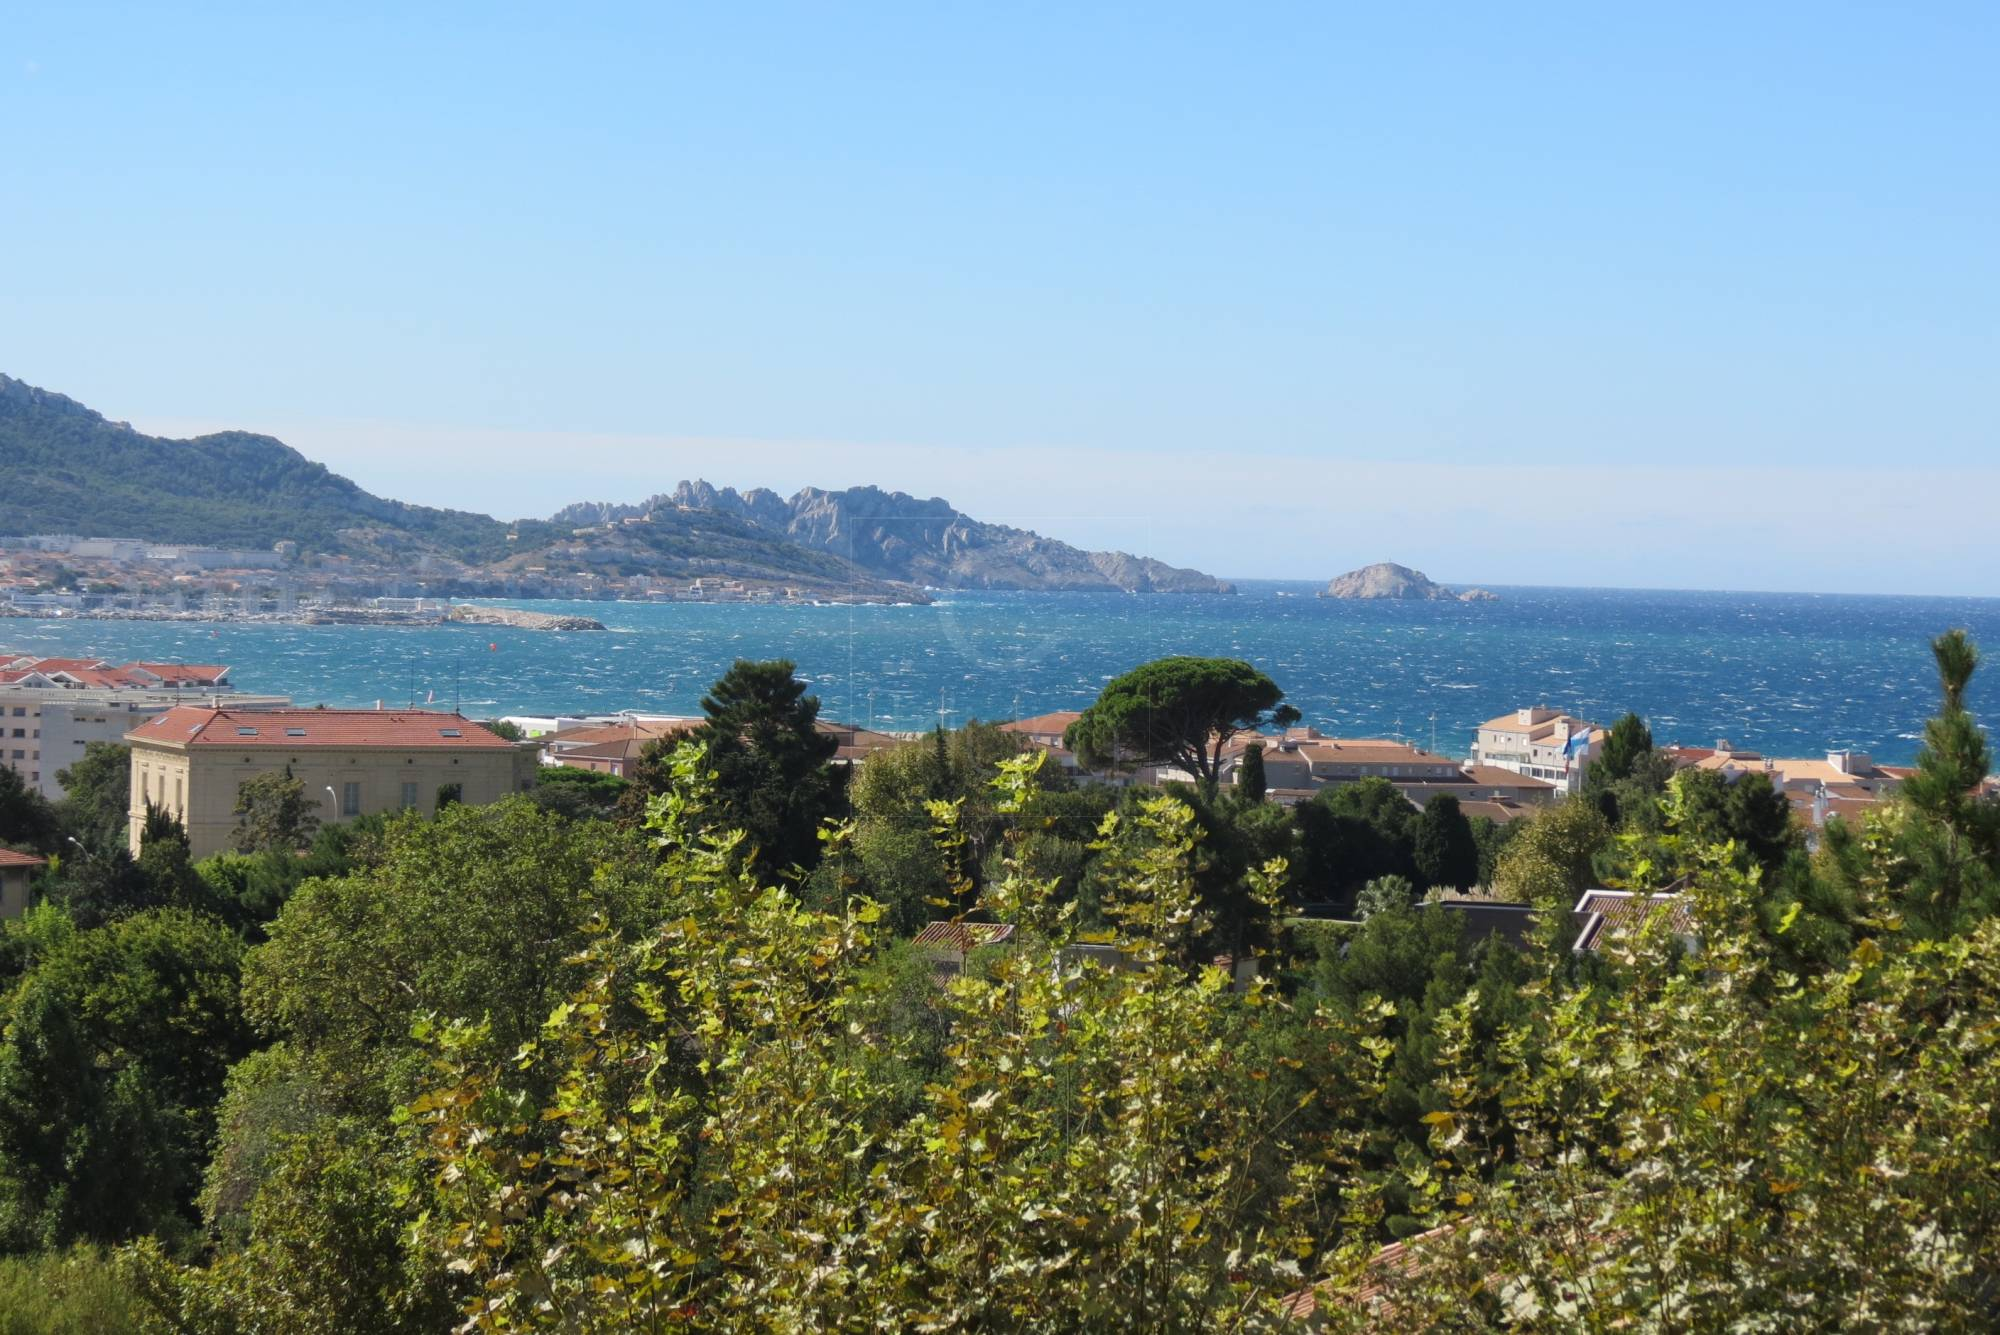 Vente appartement t3 f3 marseille 13008 thalassa cdt for T3 marseille vente